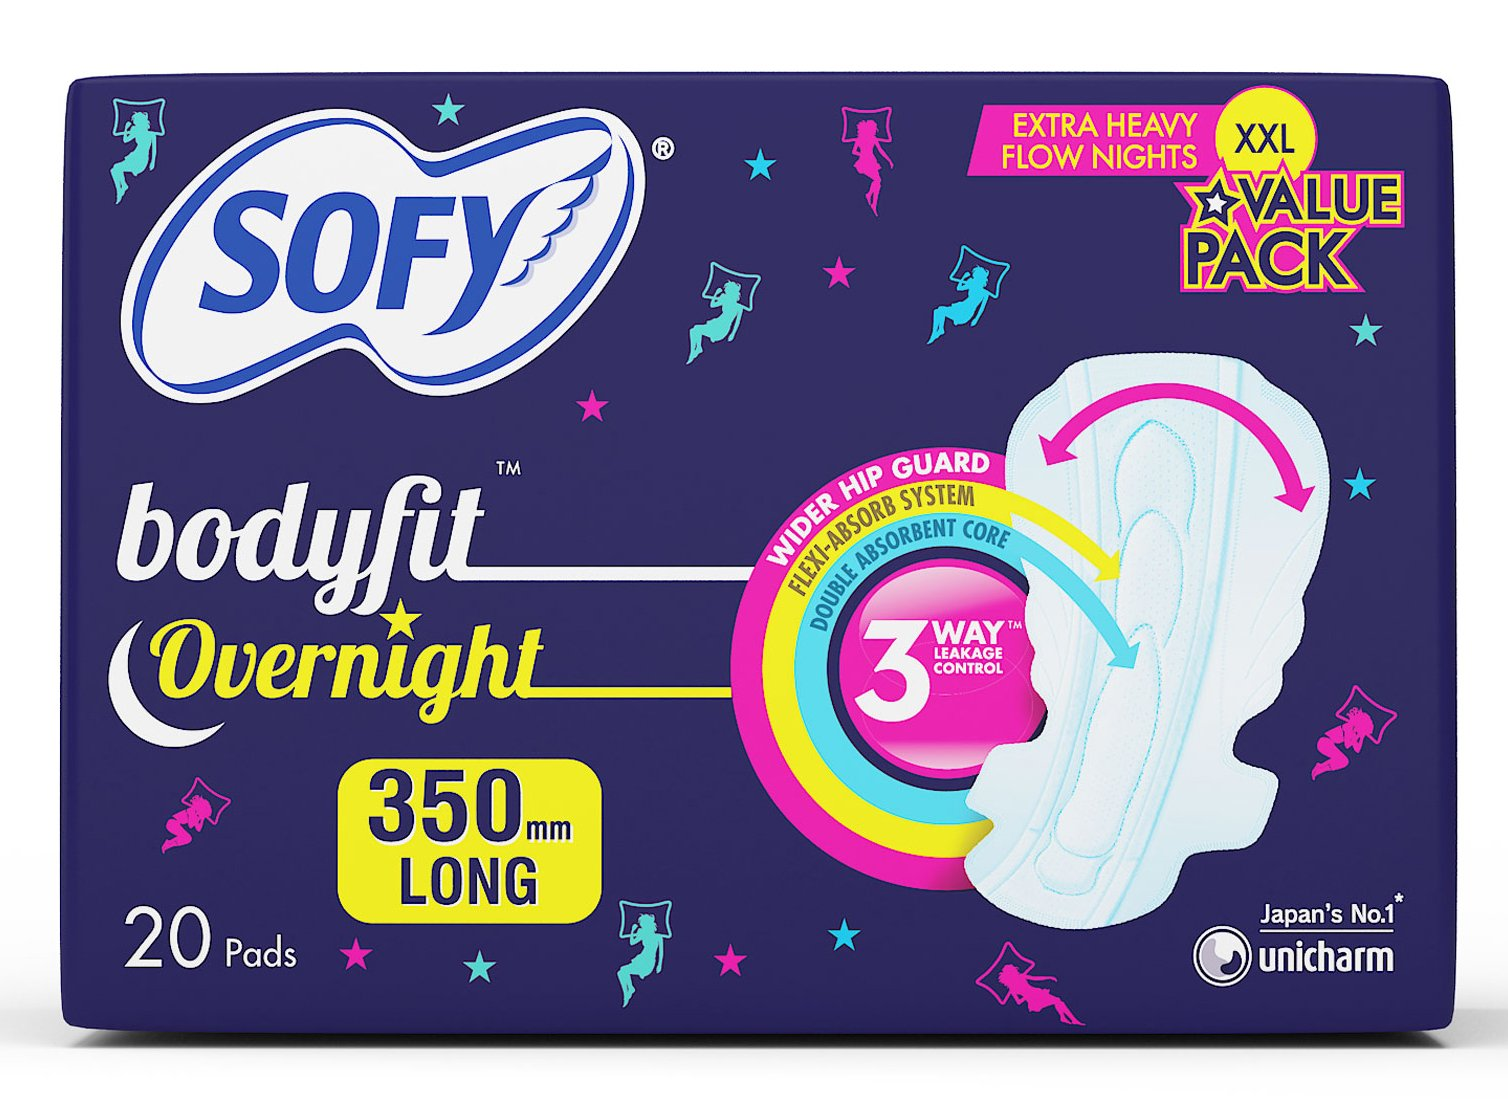 Sofy Anti Bacteria Overnight - XXL (20 Pieces) product image